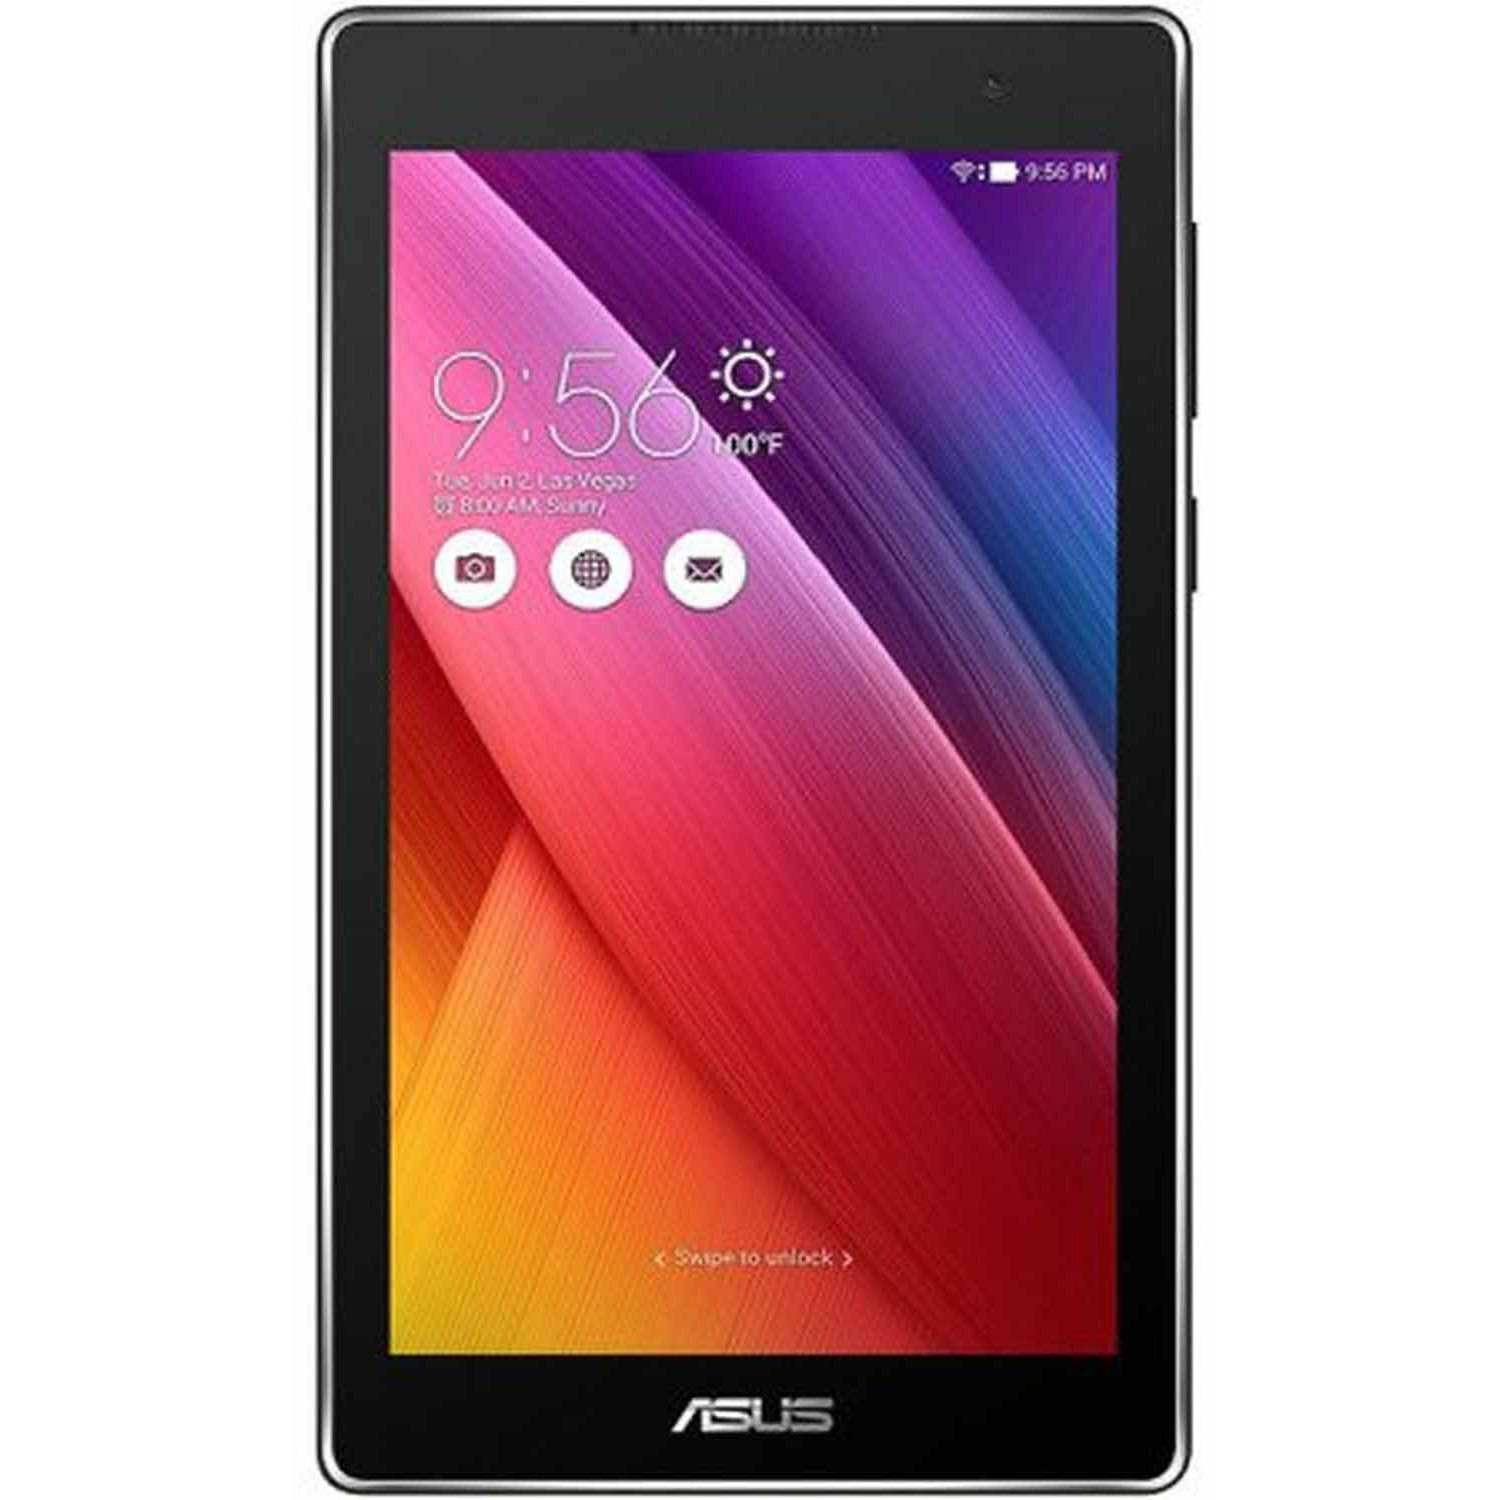 "ASUS Z170CA1BK 7"" Tablet 16GB with WiFi Intel Atom X3-C3200rk Quad-Core Processor Featuring Android (5.1) Lollipop"